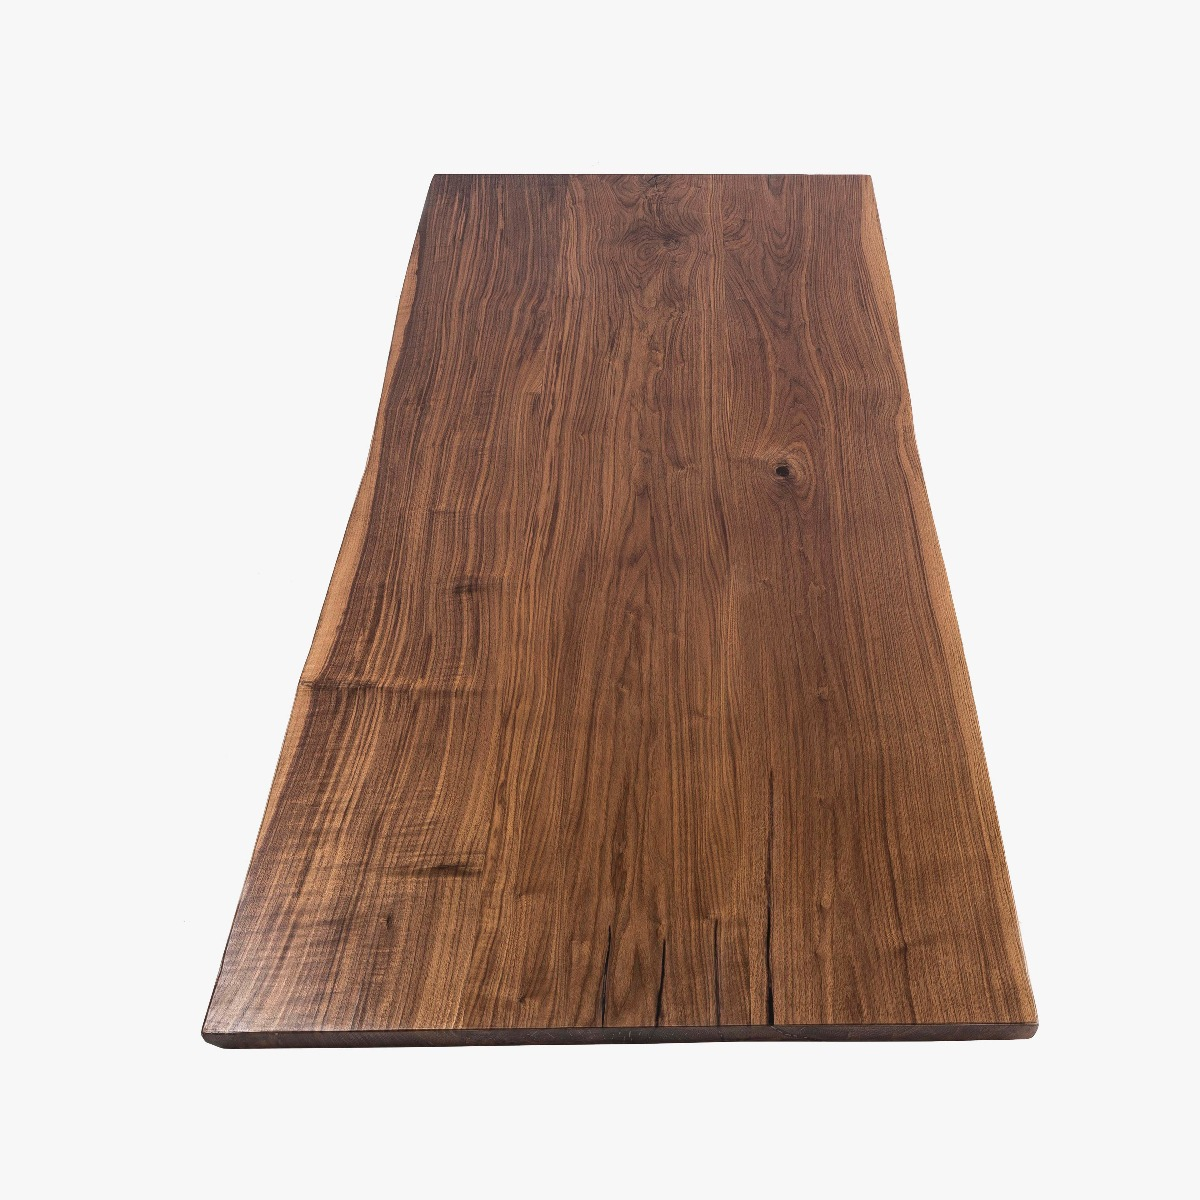 North American Black Walnut wood has rich, dark tones and intricate grain patterns.